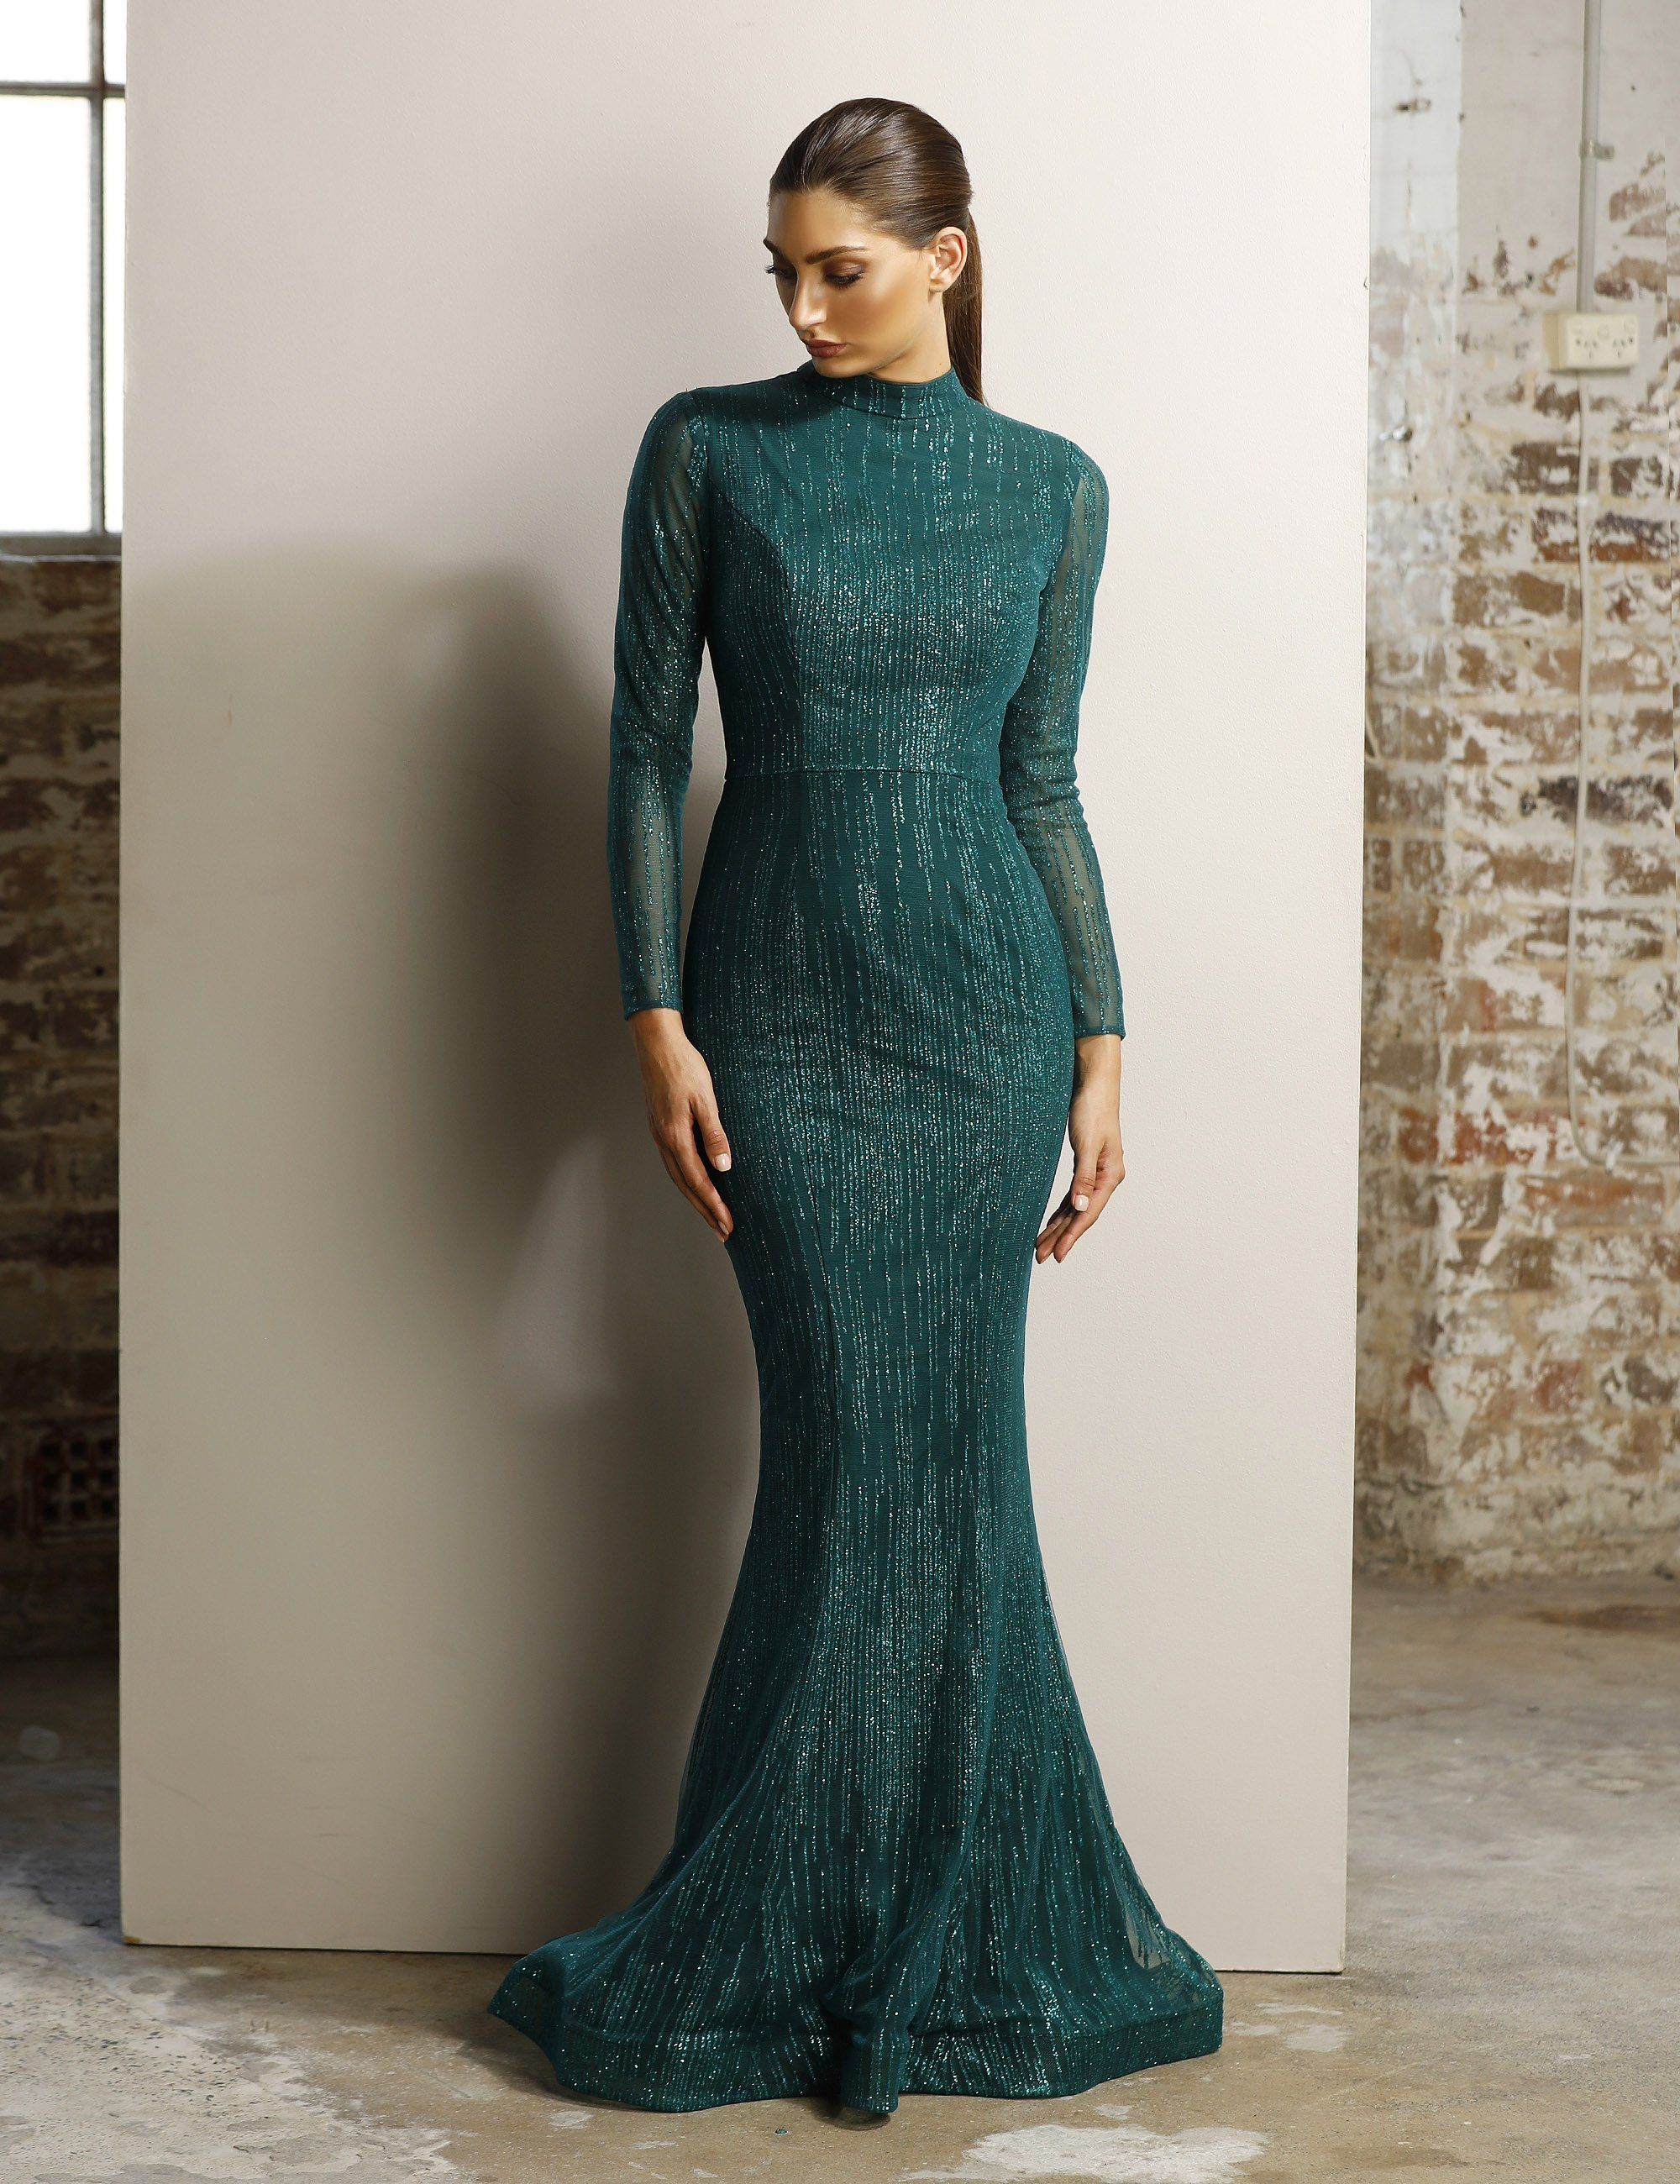 0c8e4541d7e0 JX1117 Evening Dresses With Sleeves